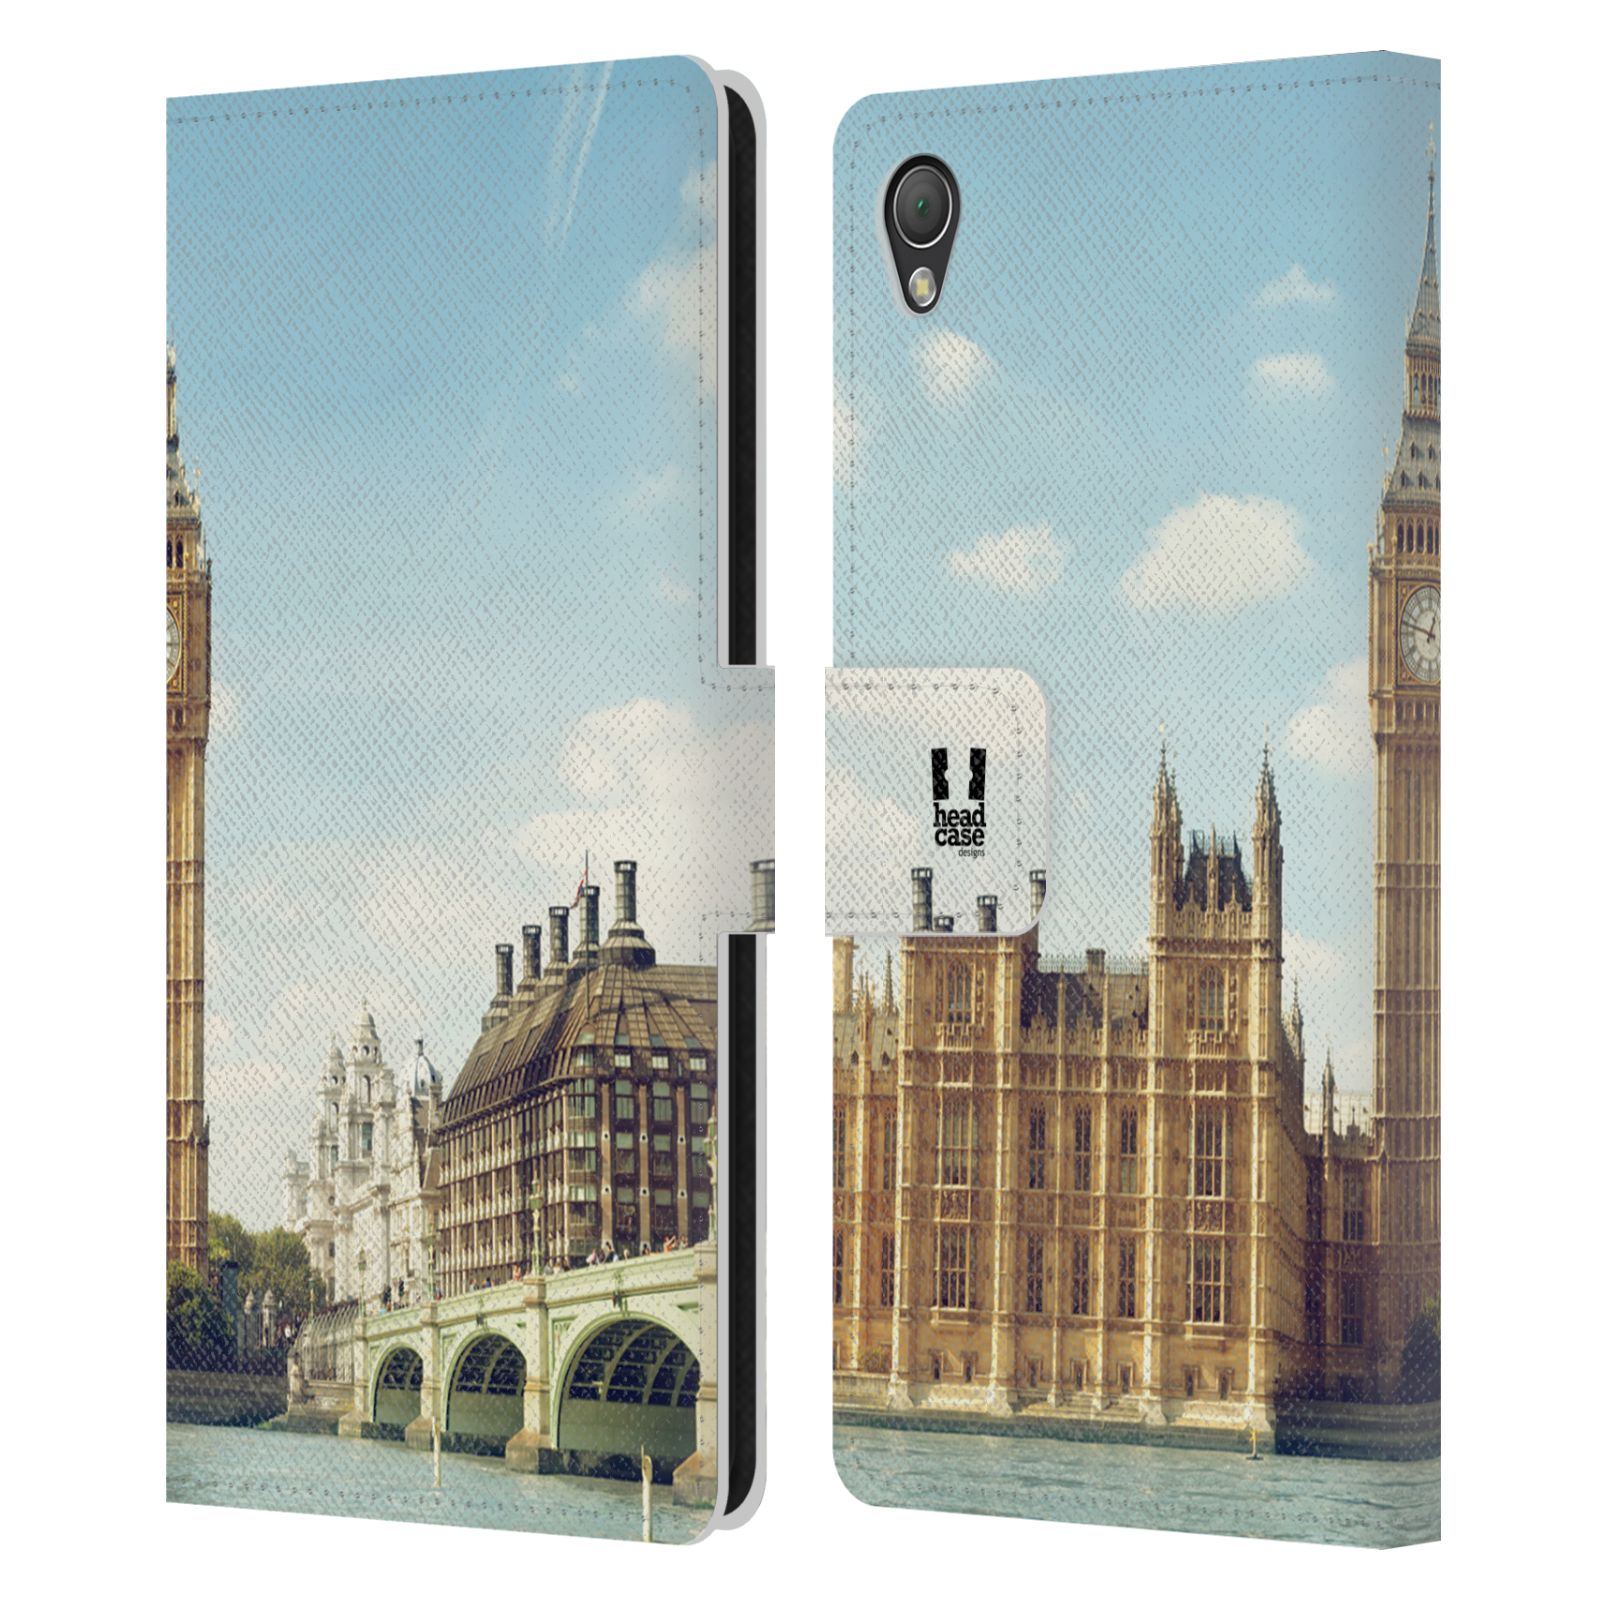 HEAD CASE DESIGNS CITY SKYLINES LEATHER BOOK WALLET CASE COVER FOR SONY PHONES 1